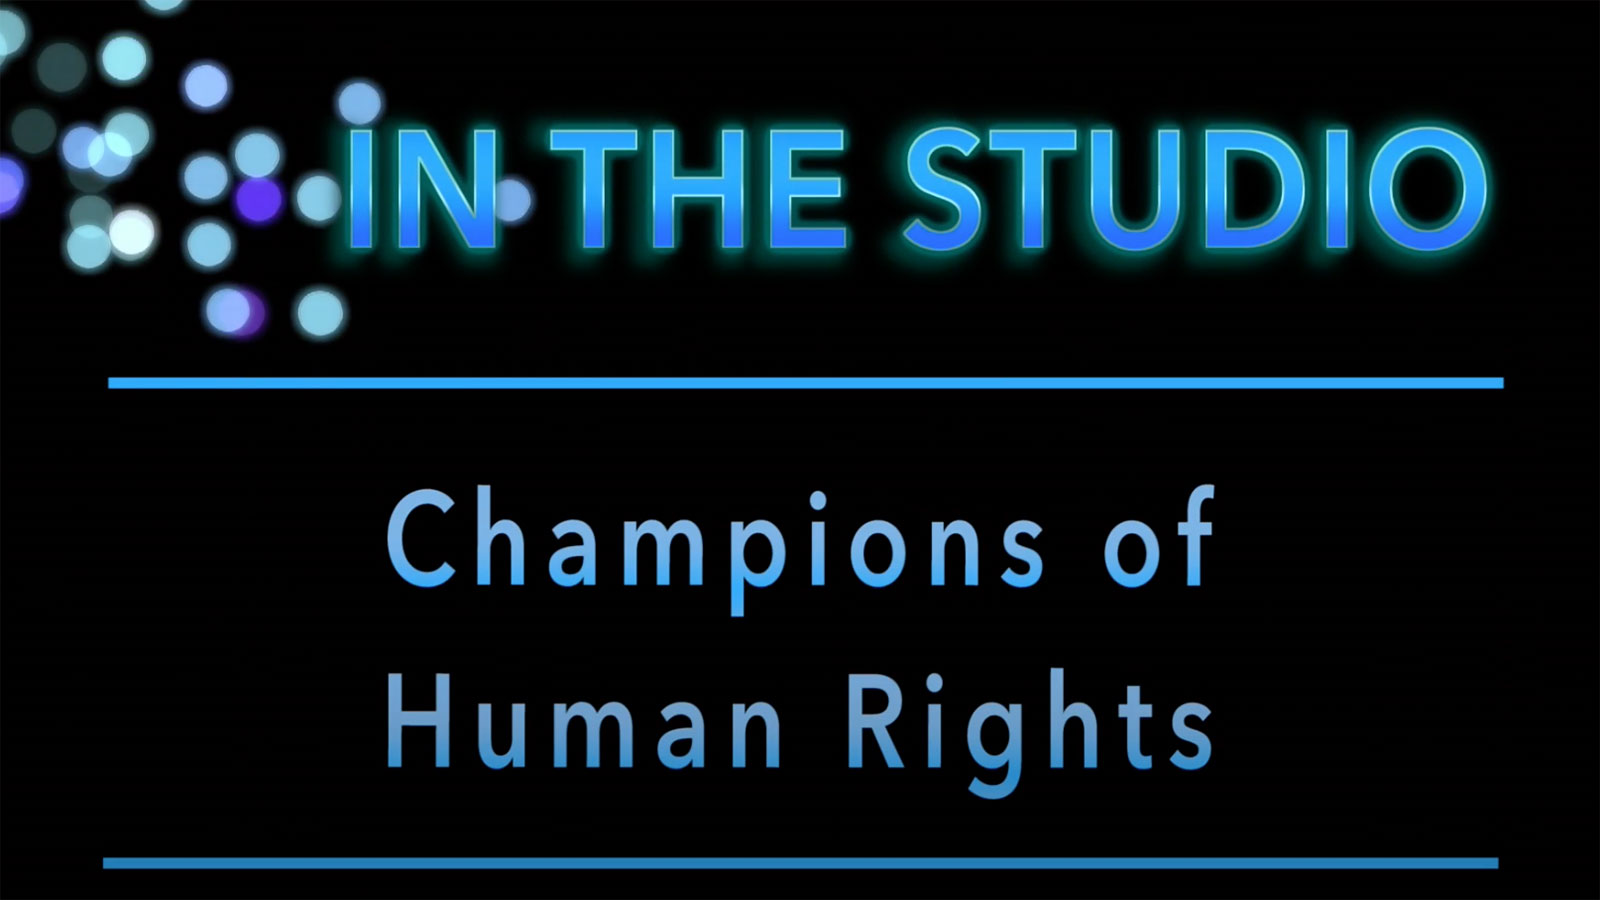 In the Studio: Champions of Human Rights